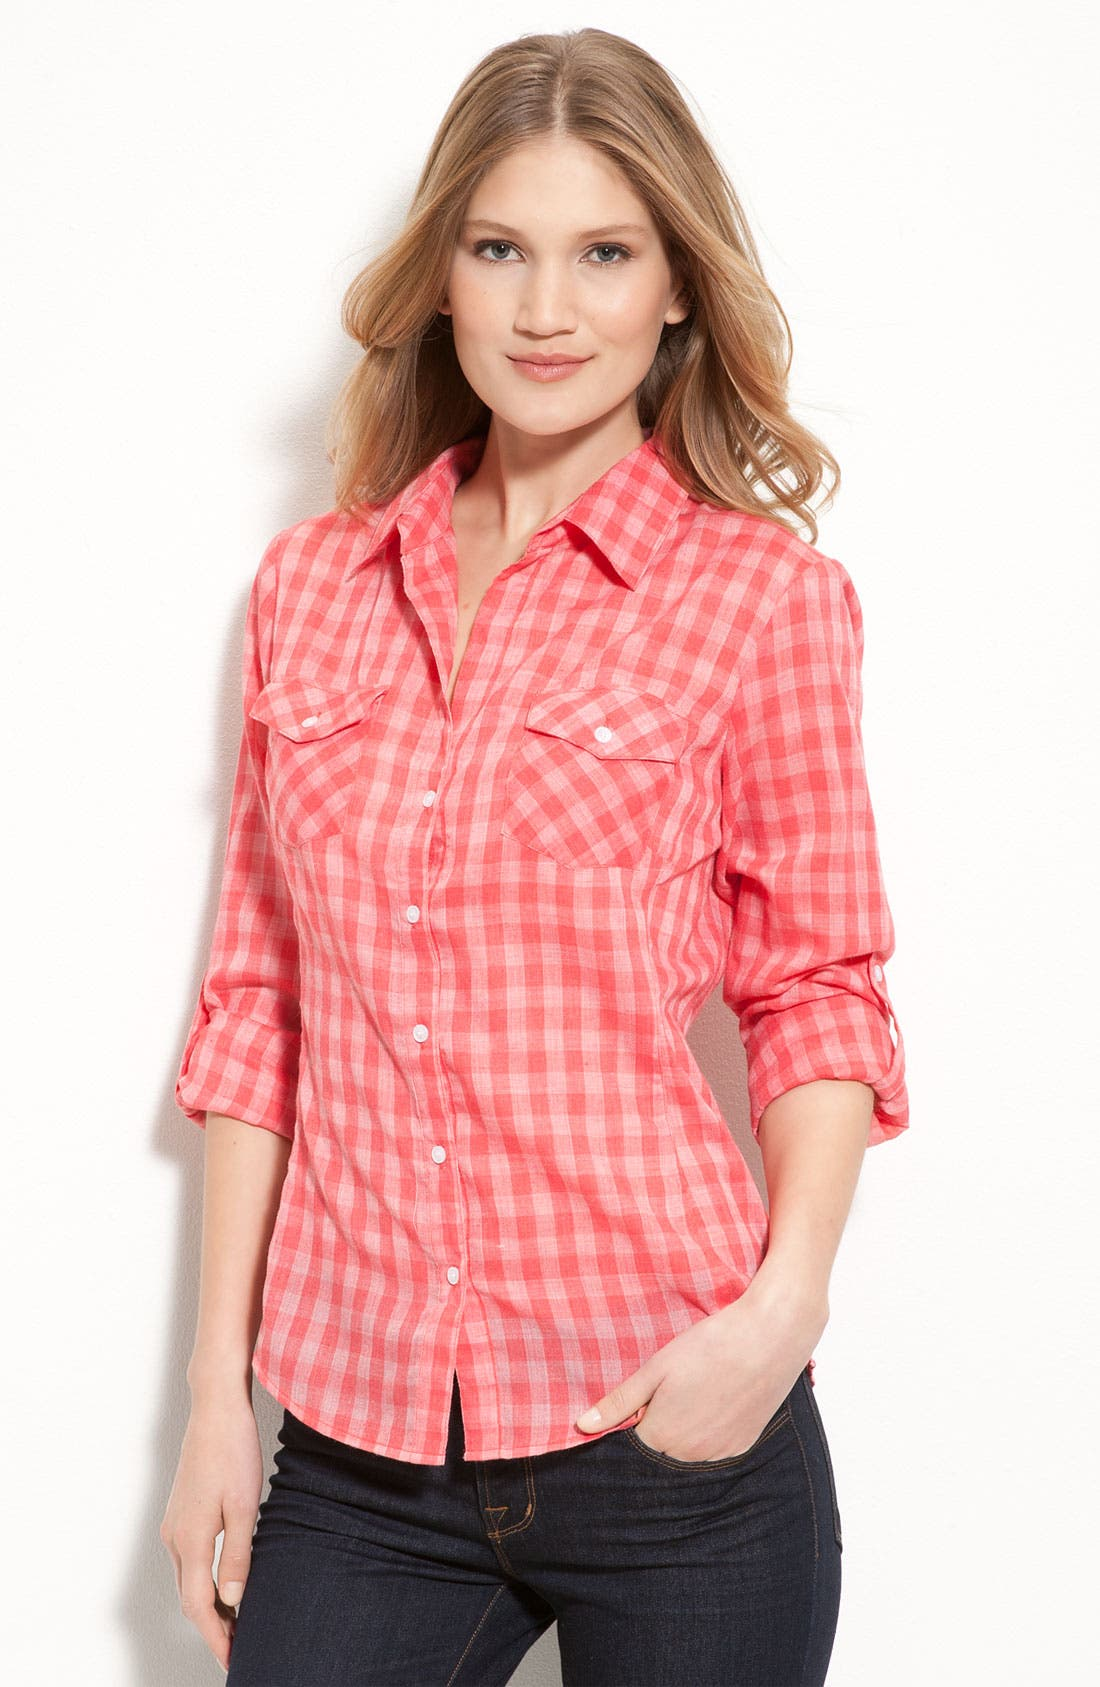 Alternate Image 1 Selected - Sandra Ingrish Roll Sleeve Gingham Shirt (Petite)